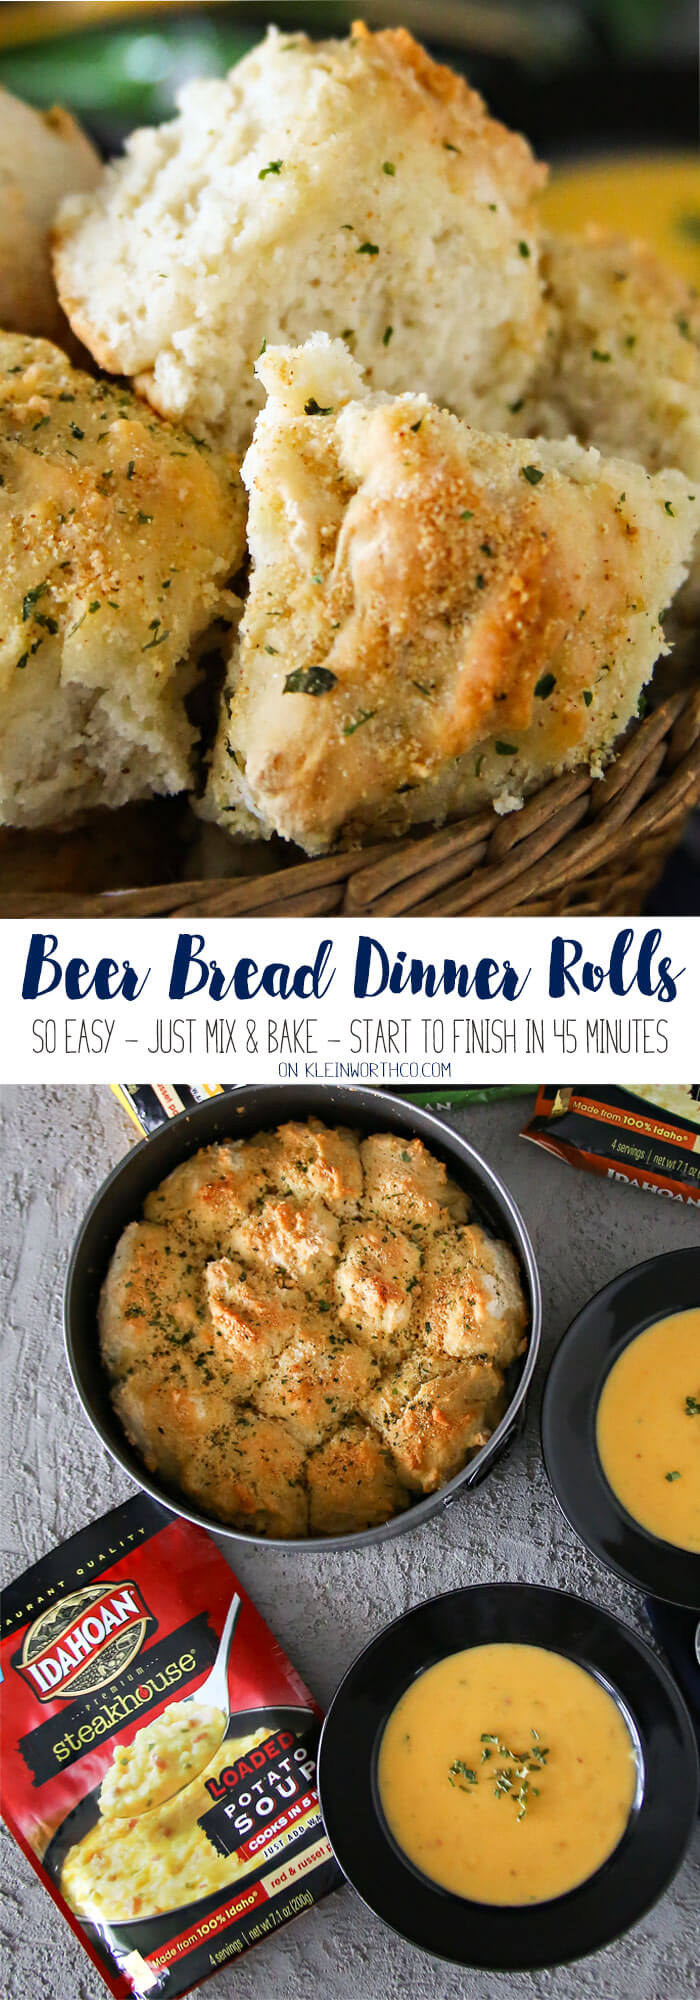 Beer Bread Dinner Rolls